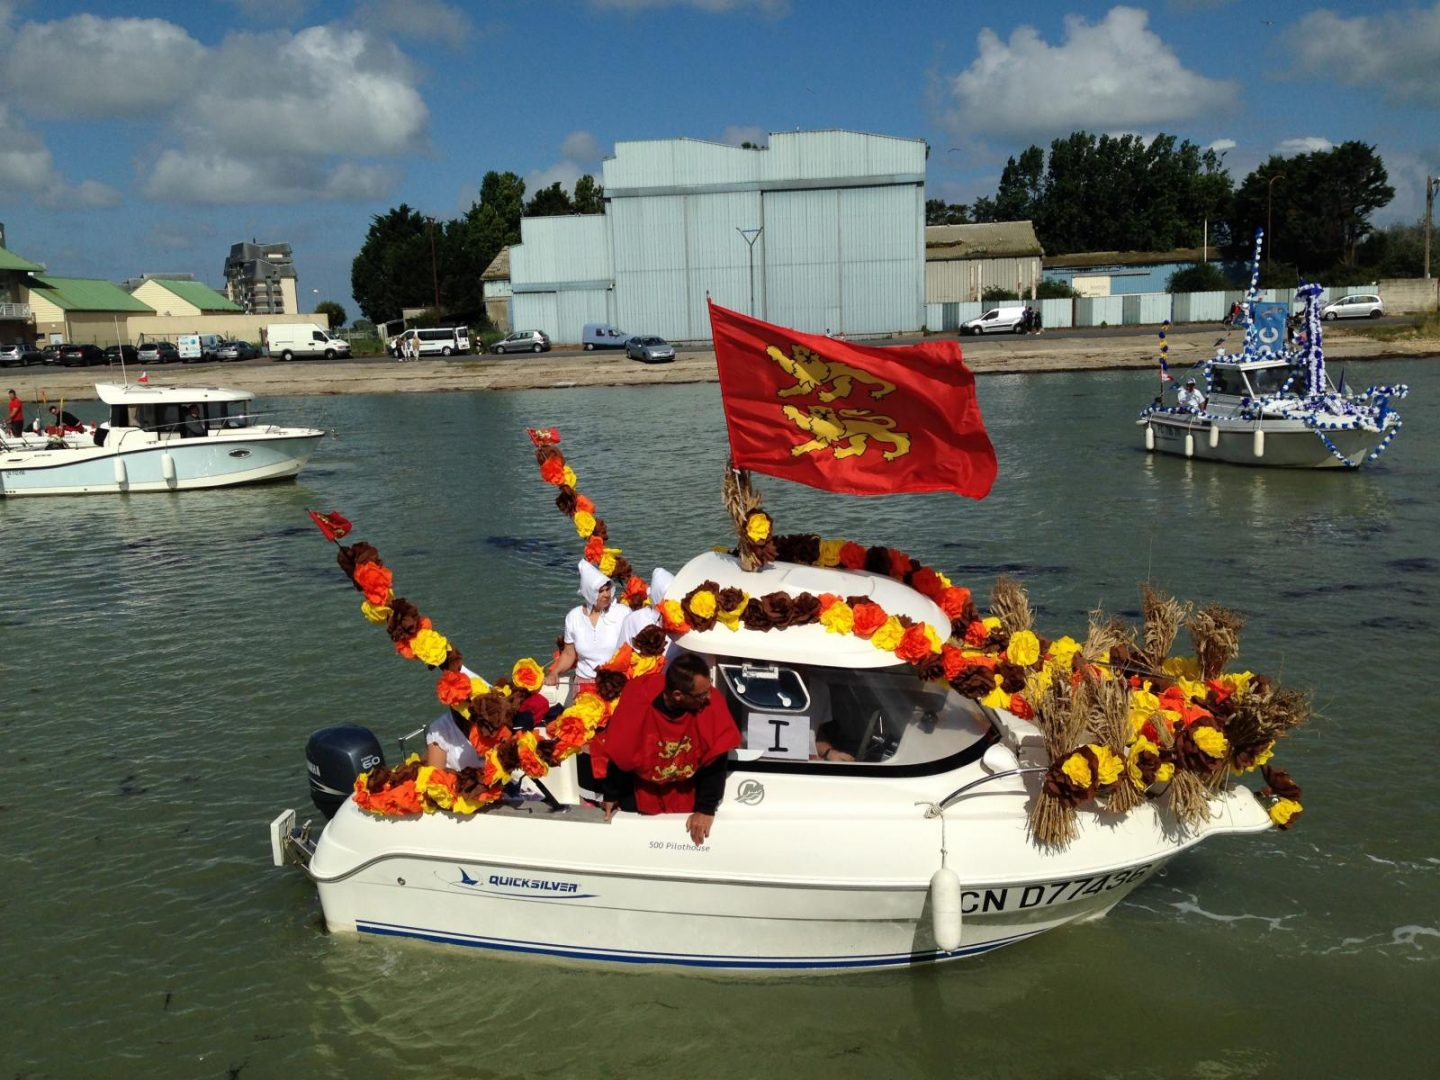 courseulles sur mer festival of the sea boat with decorations